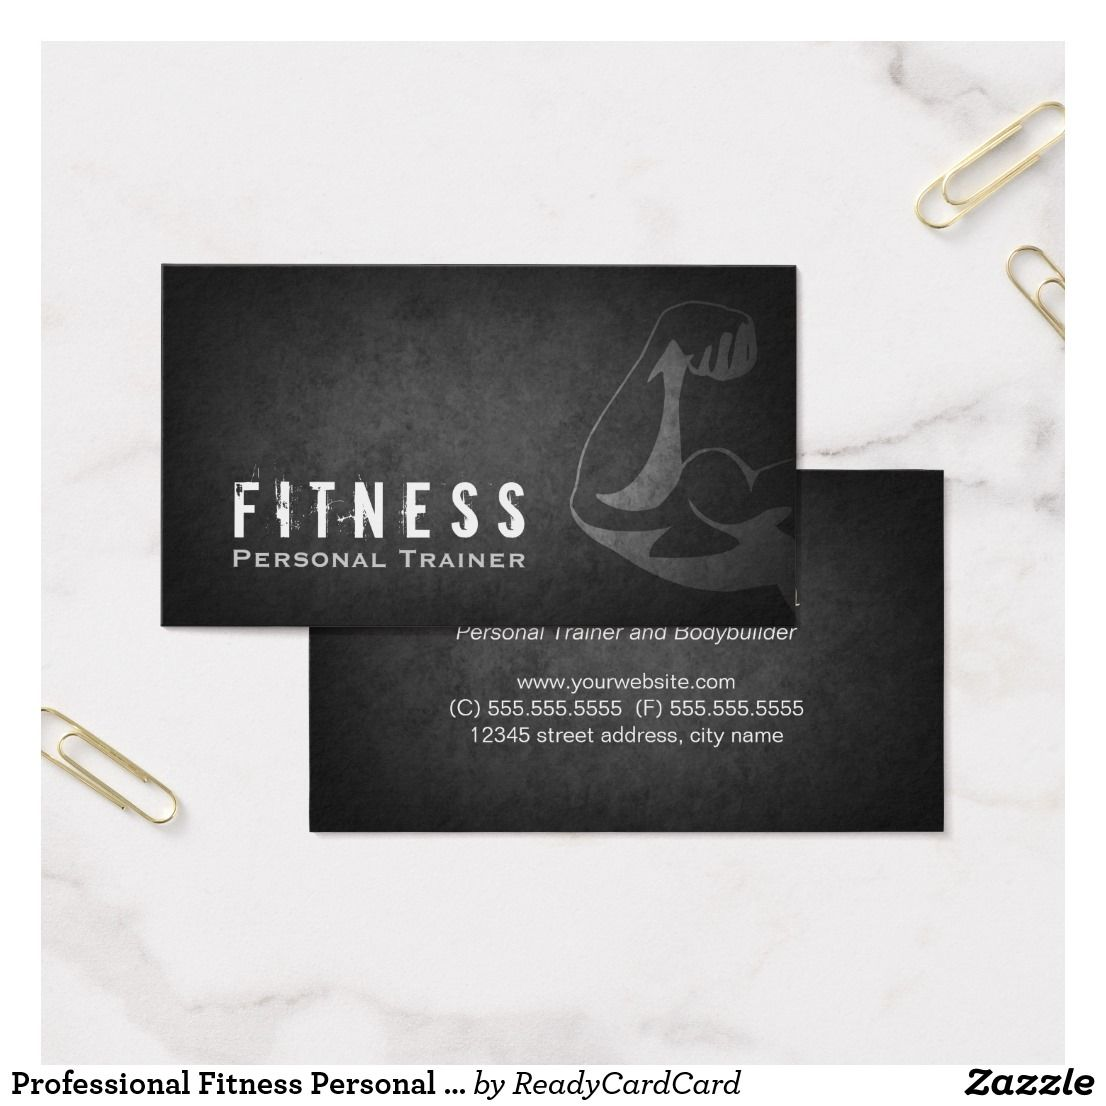 Professional Fitness Personal Trainer Muscle Business Card ...